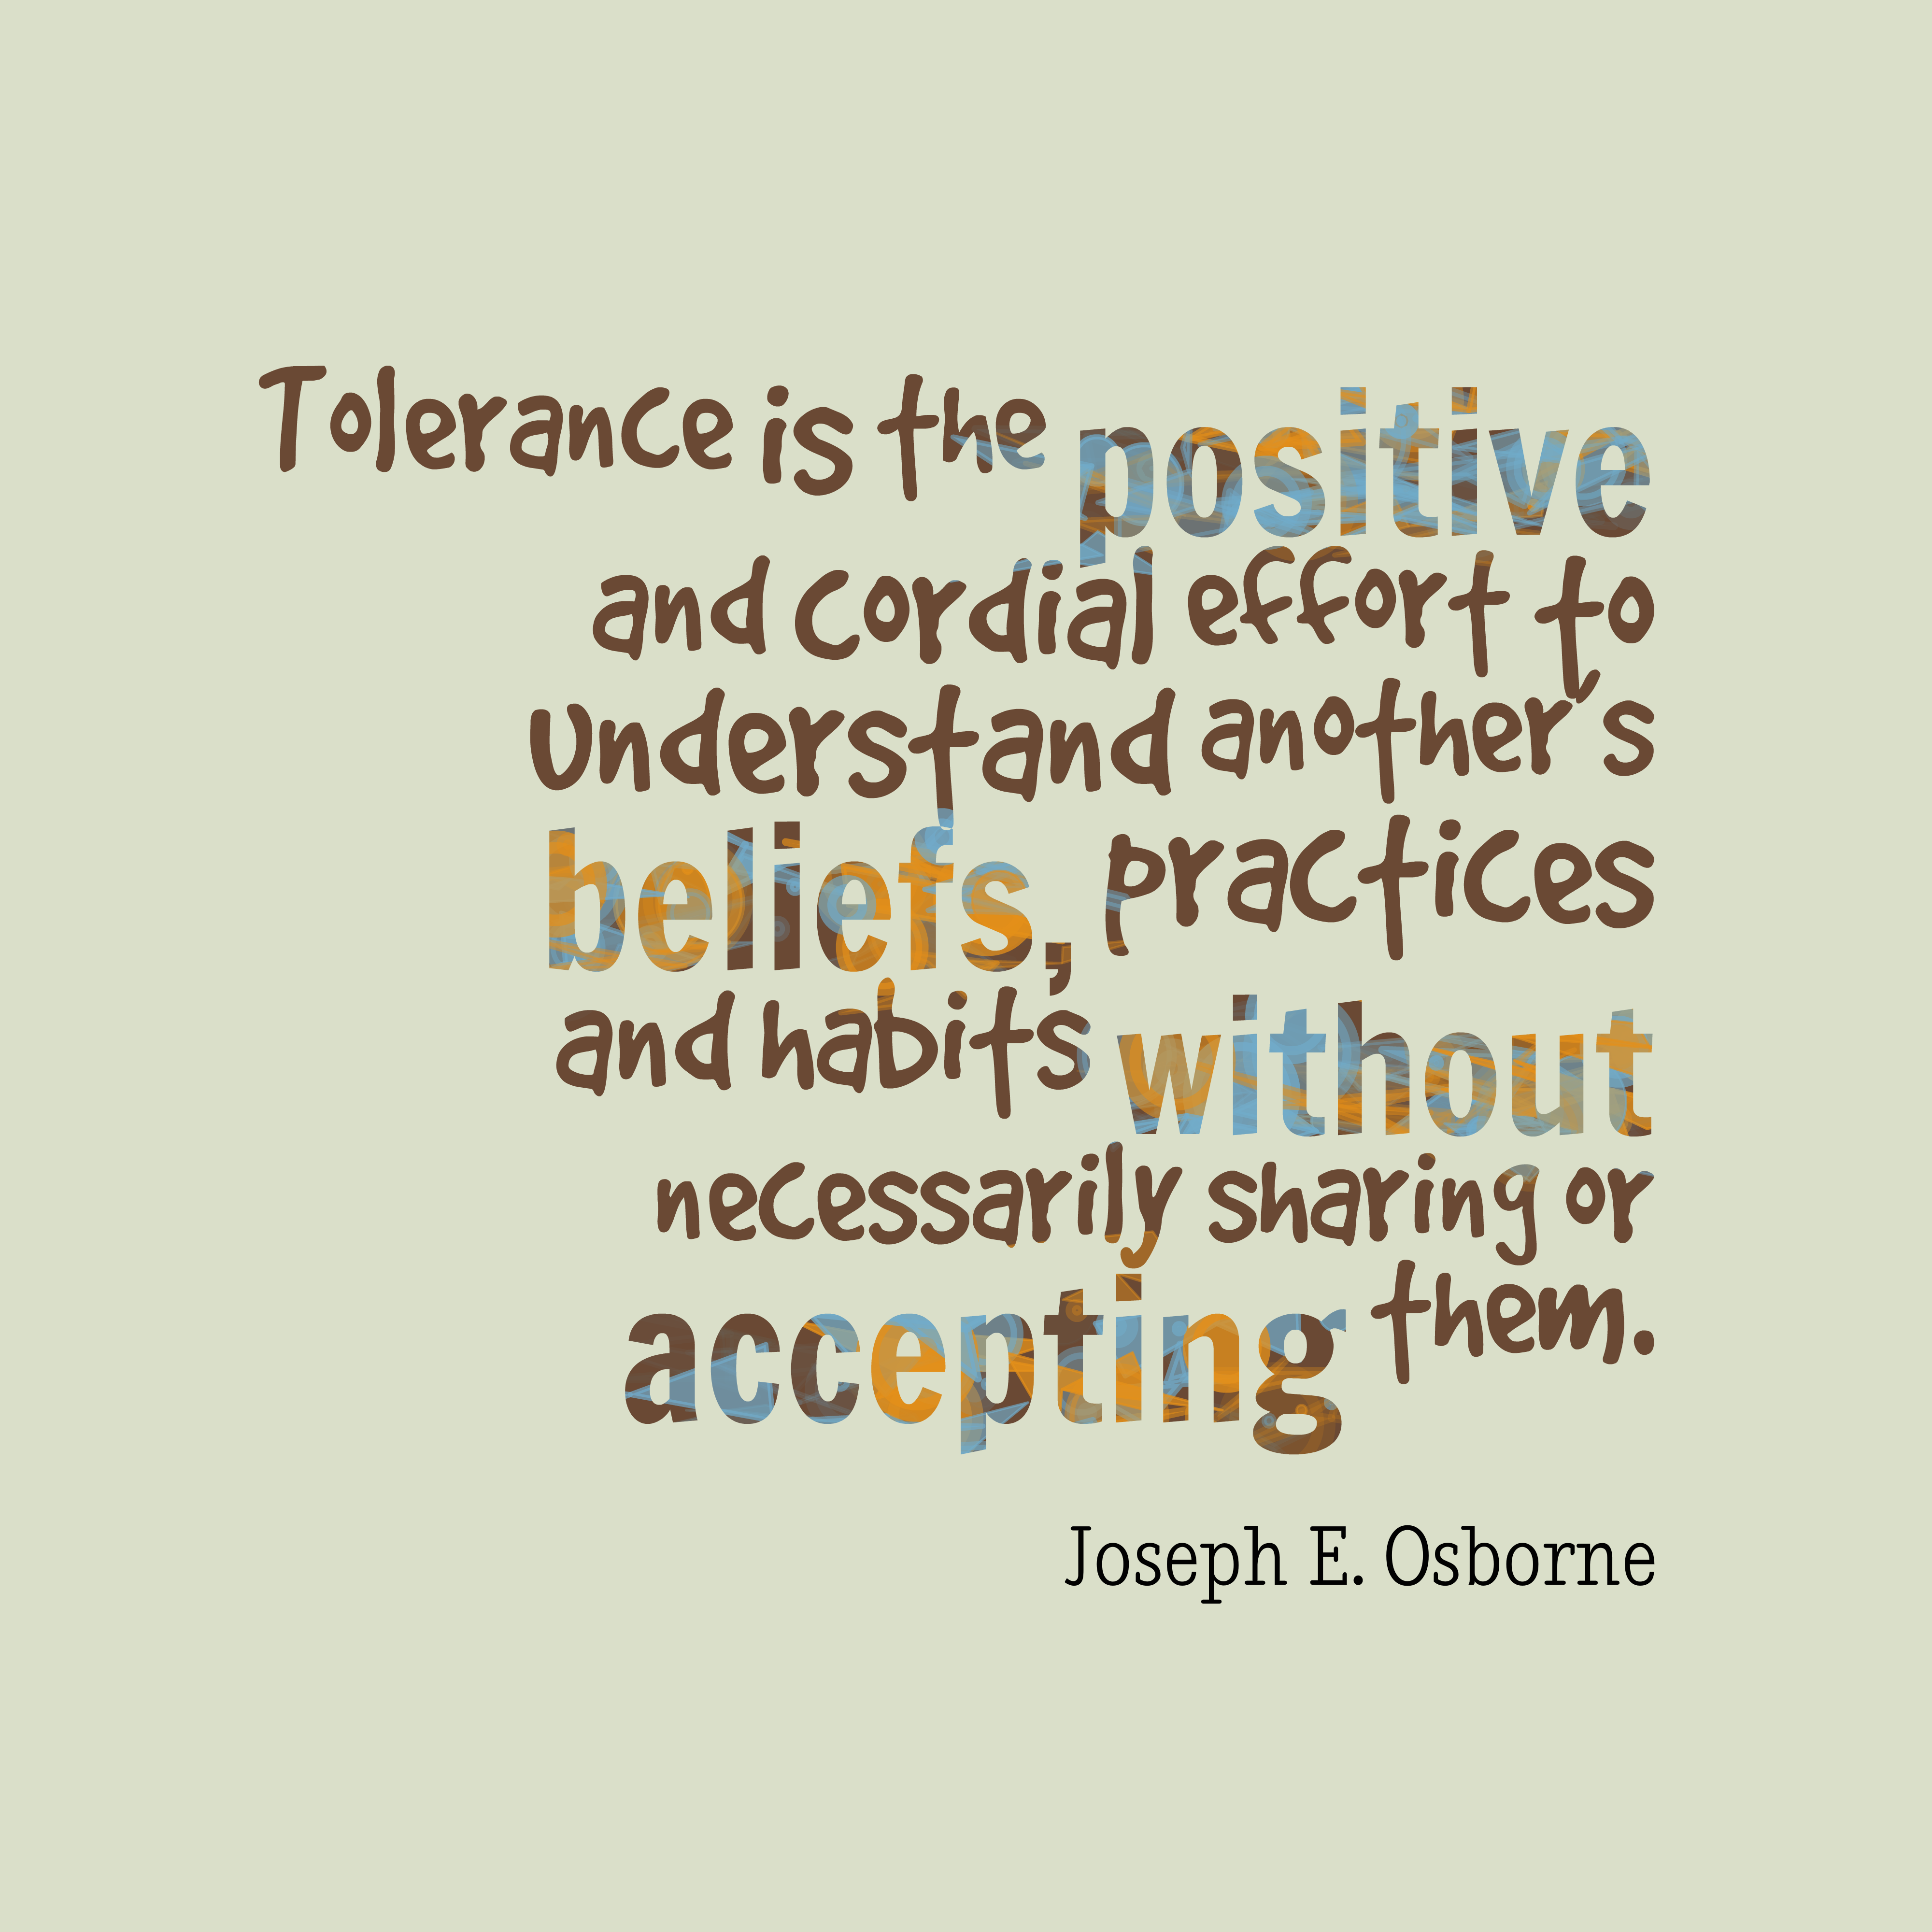 Quotes image of Tolerance is the positive and cordial effort to understand another's beliefs, practices and habits without necessarily sharing or accepting them.